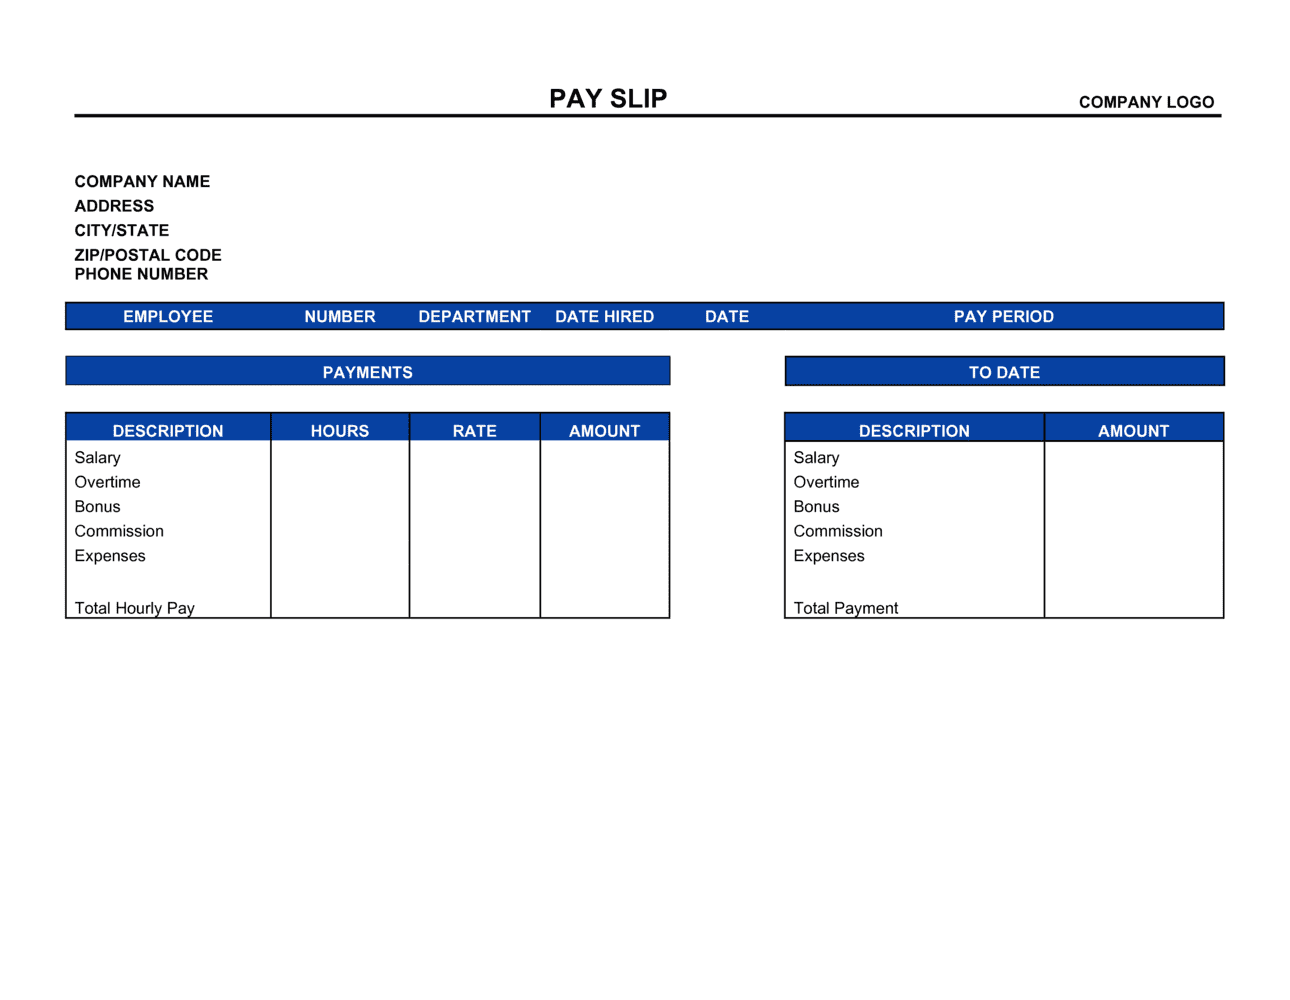 Business-in-a-Box's Payslip Template